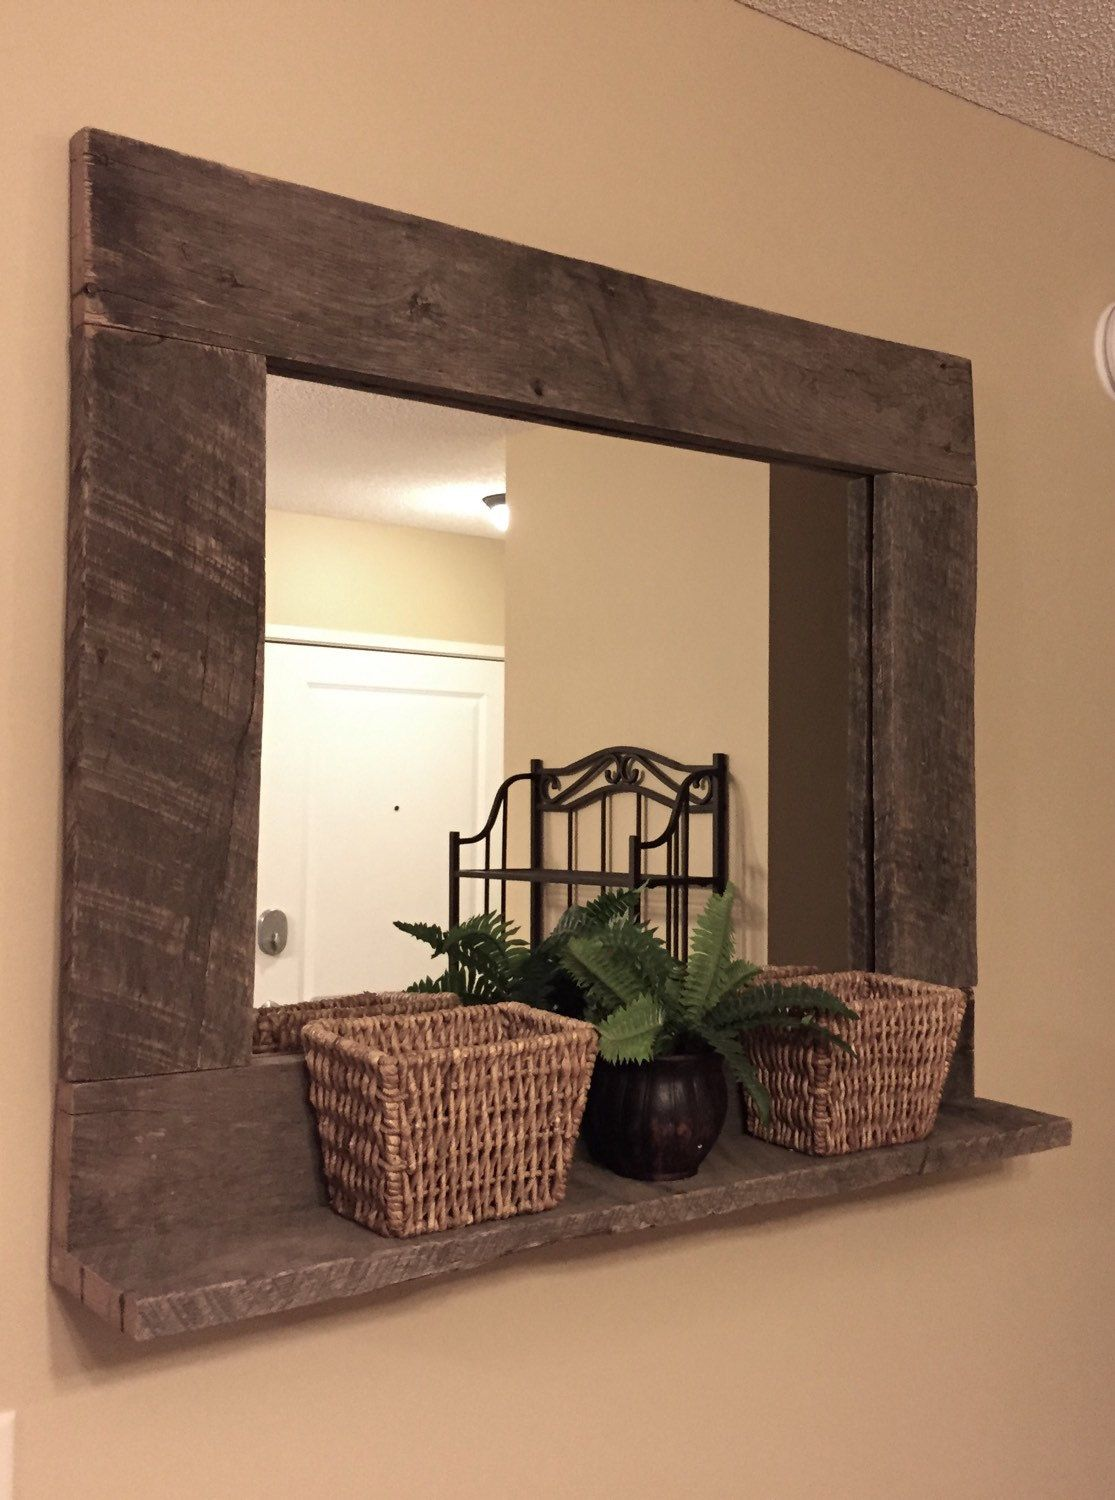 Rustic Wood Mirror Pallet Furniture Rustic Home Decor Large Wall Mirror Hanging Mirror With Shelf By Bandvrusticdes Rustic Furniture Decor Diy Pallet Furniture